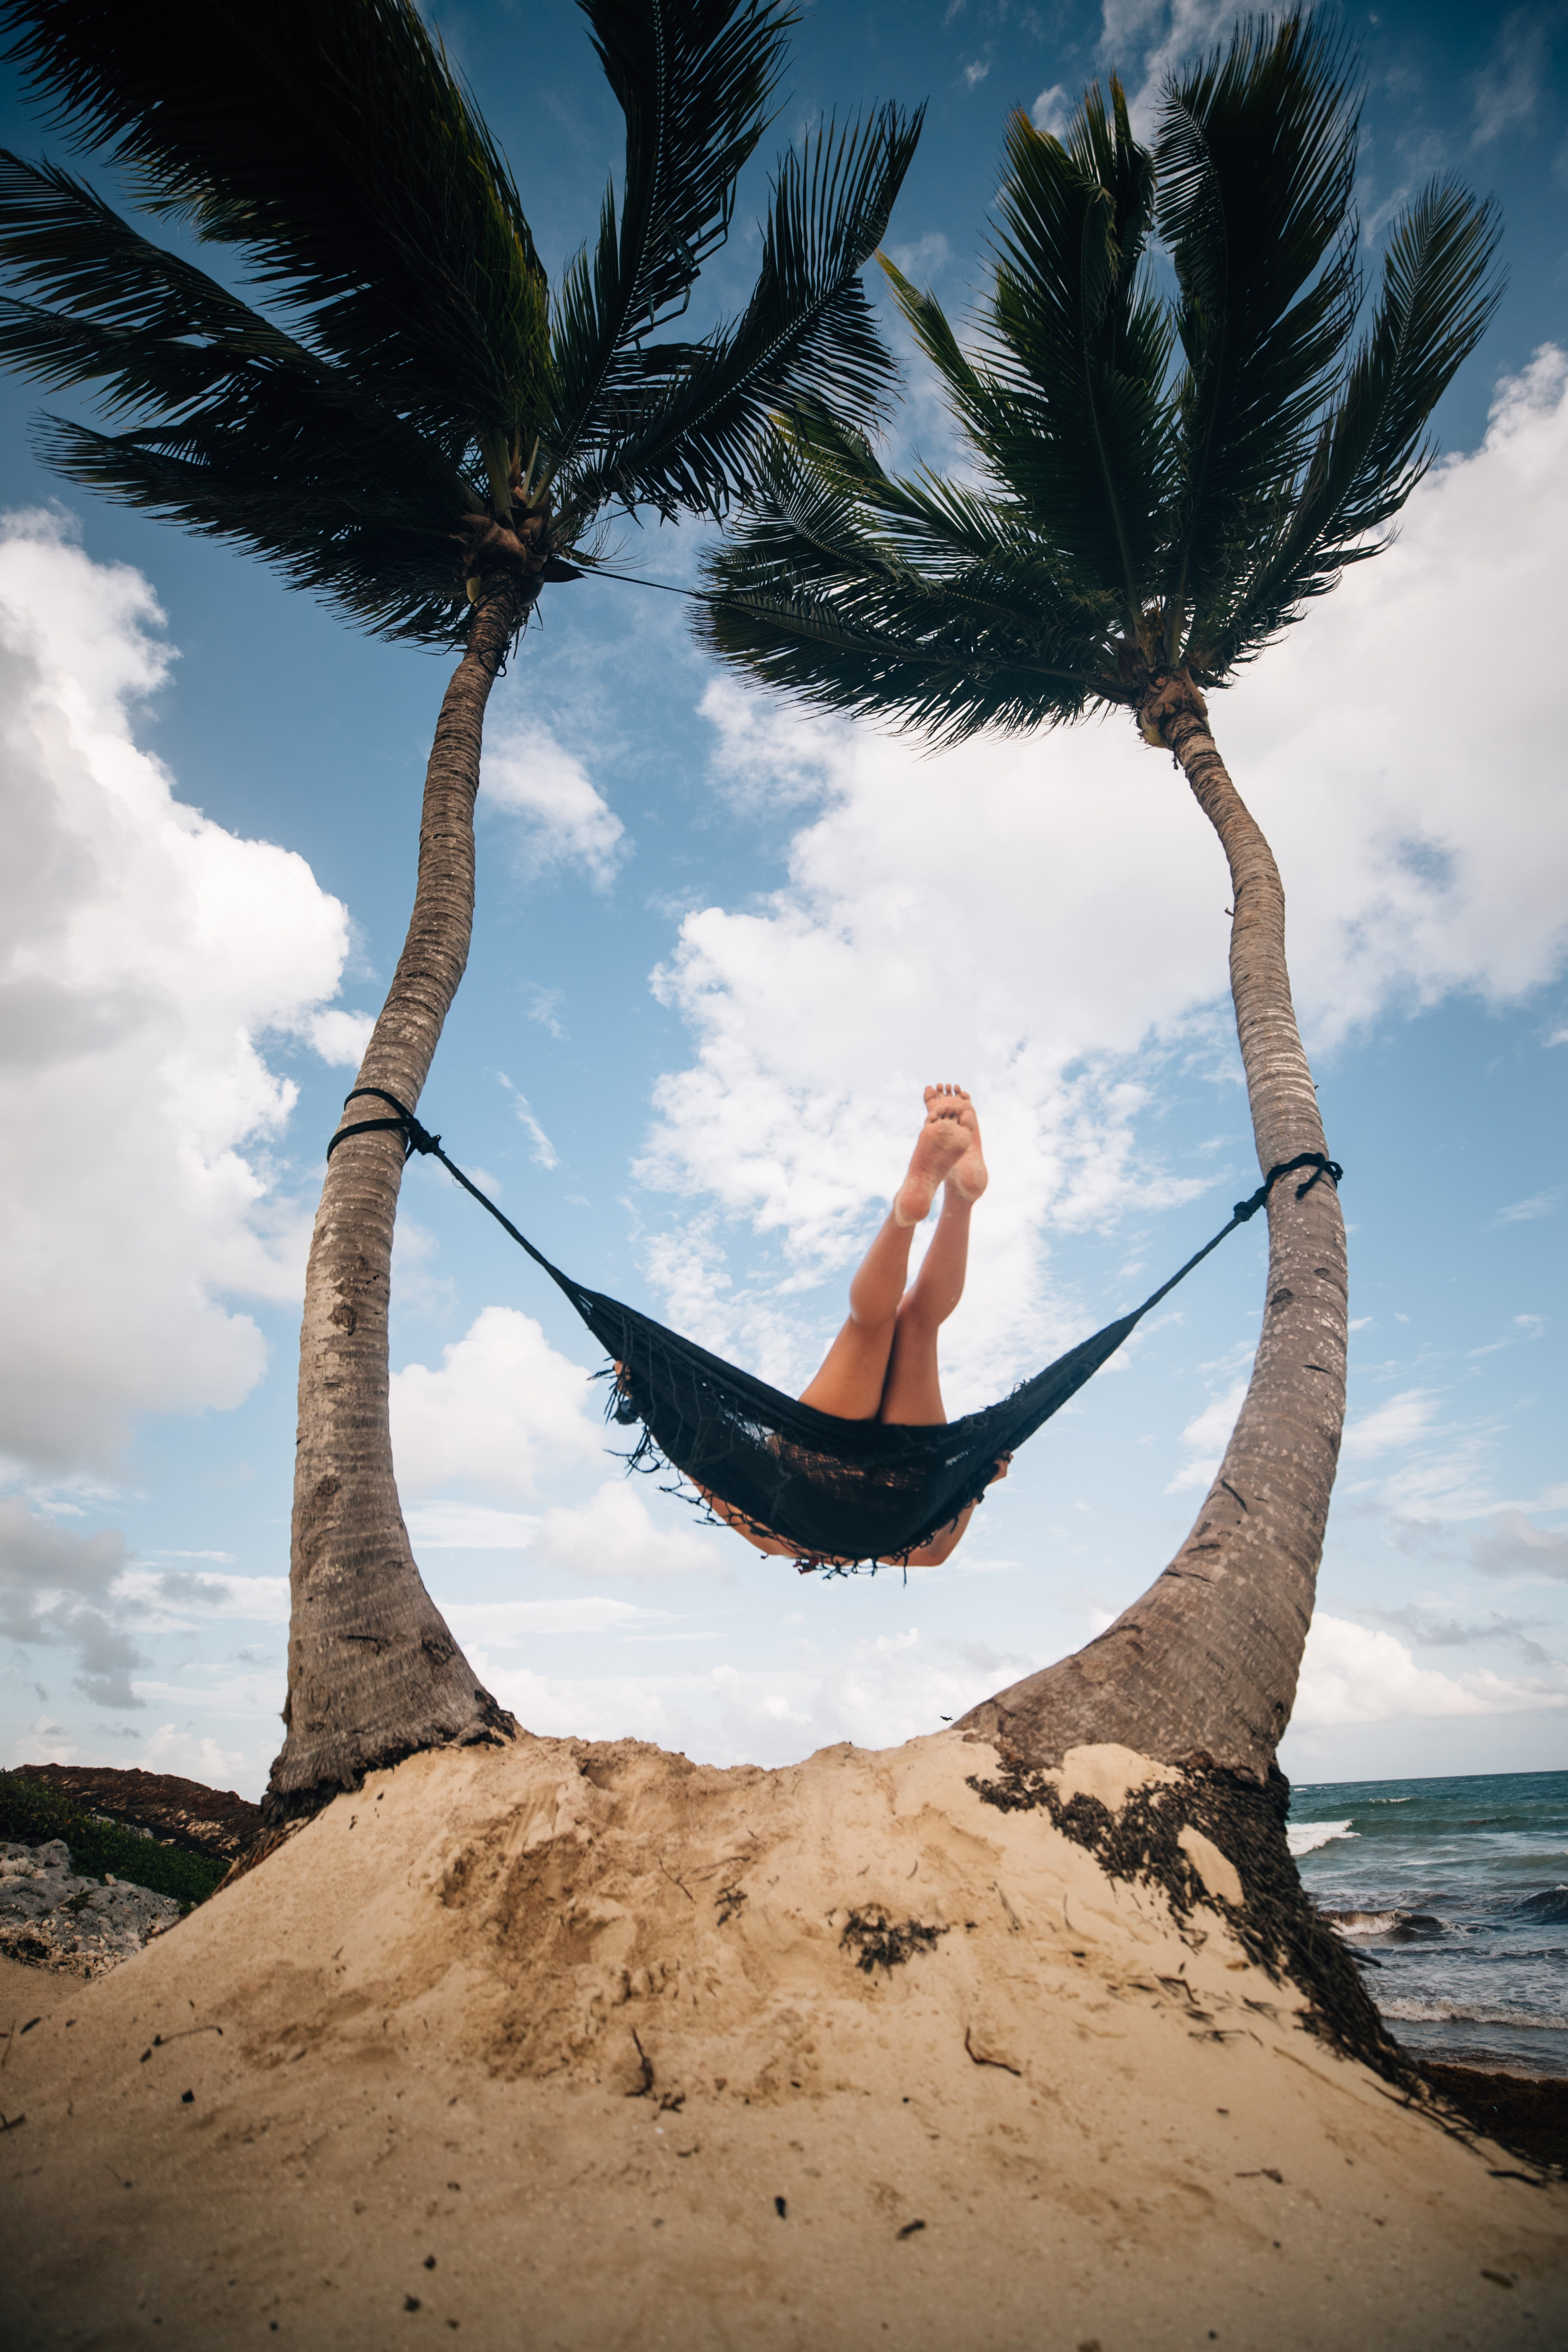 person riding on hammock near body of water